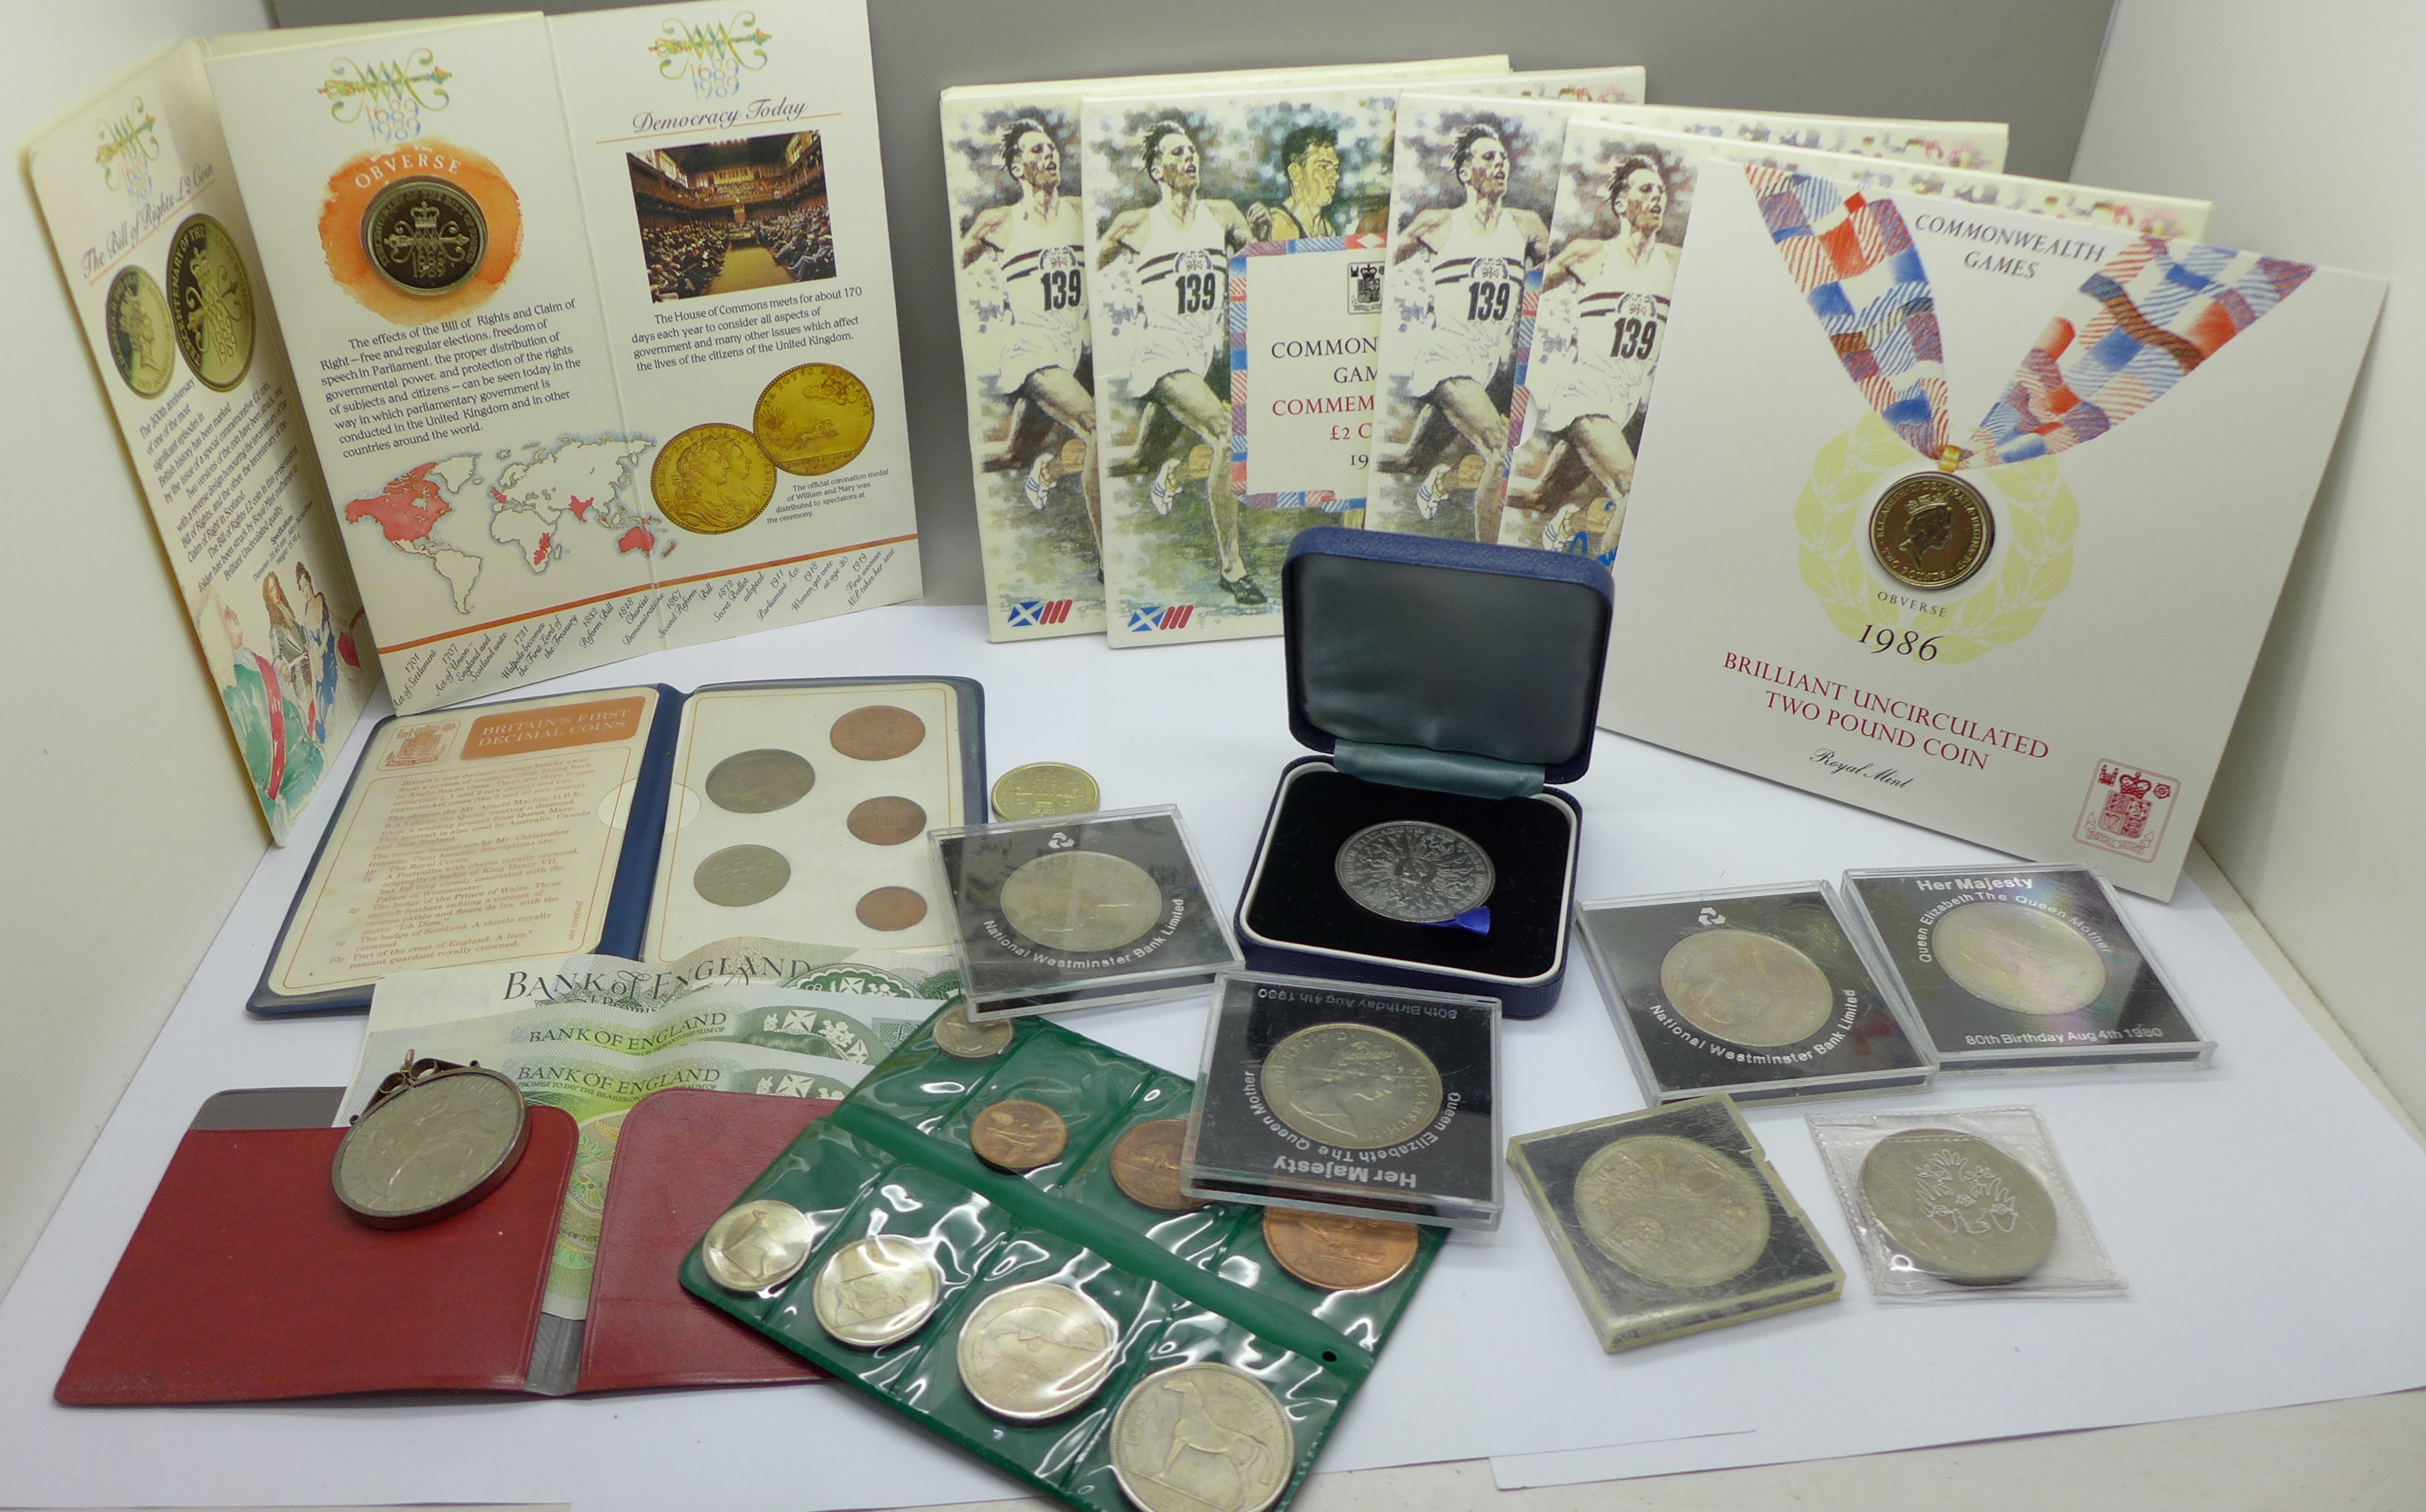 Four £2 commemorative coins from the 1986 Commonwealth Games, a collection of other commemorative